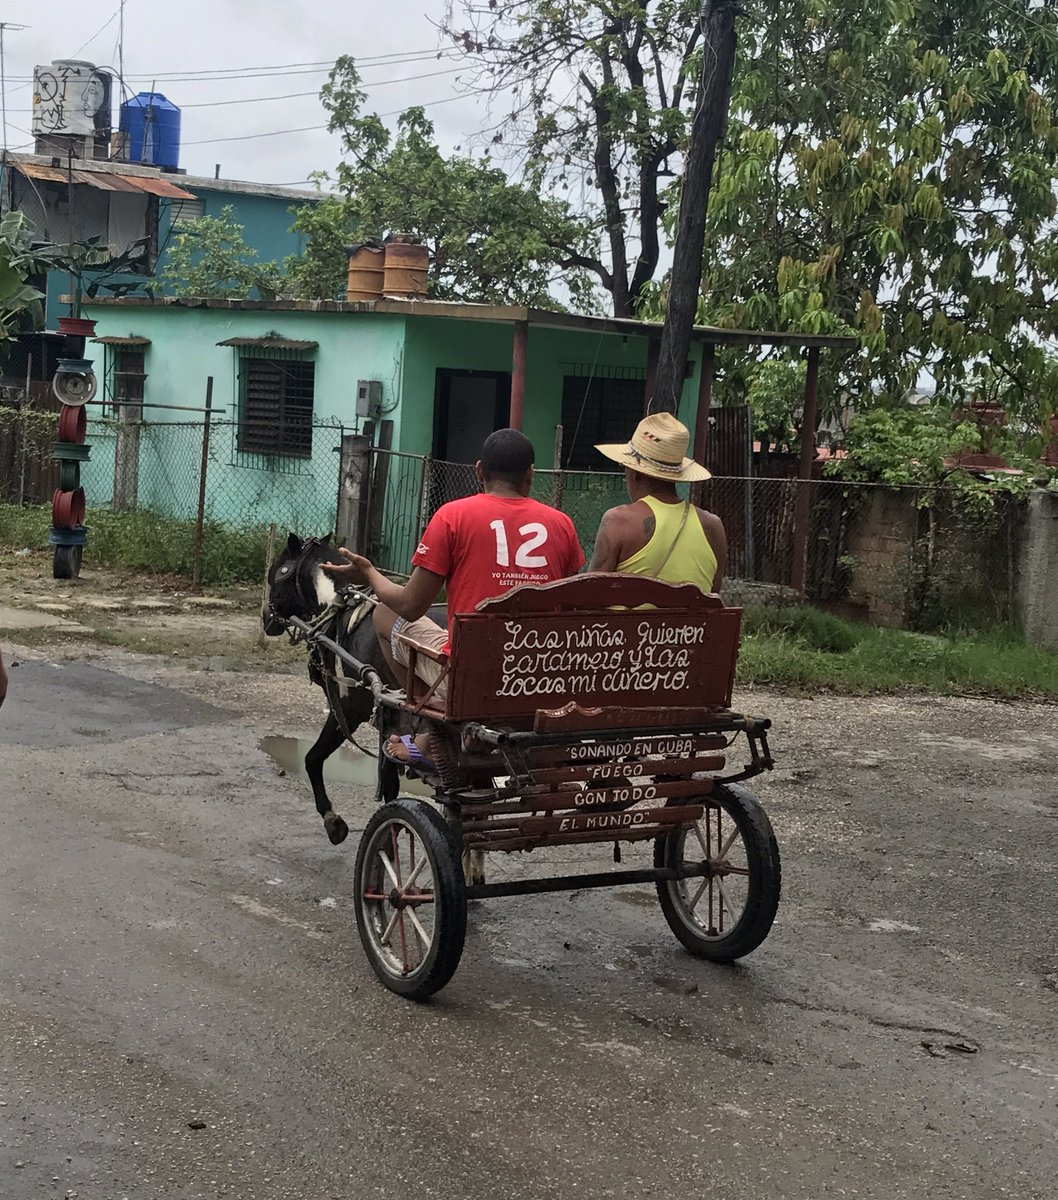 test Twitter Media - In Cuba, if you don't own an old car, you likely travel by horse, horse and buggy, or motorcycle.  But that doesn't seem to stop people. https://t.co/LTCAsf6ww2